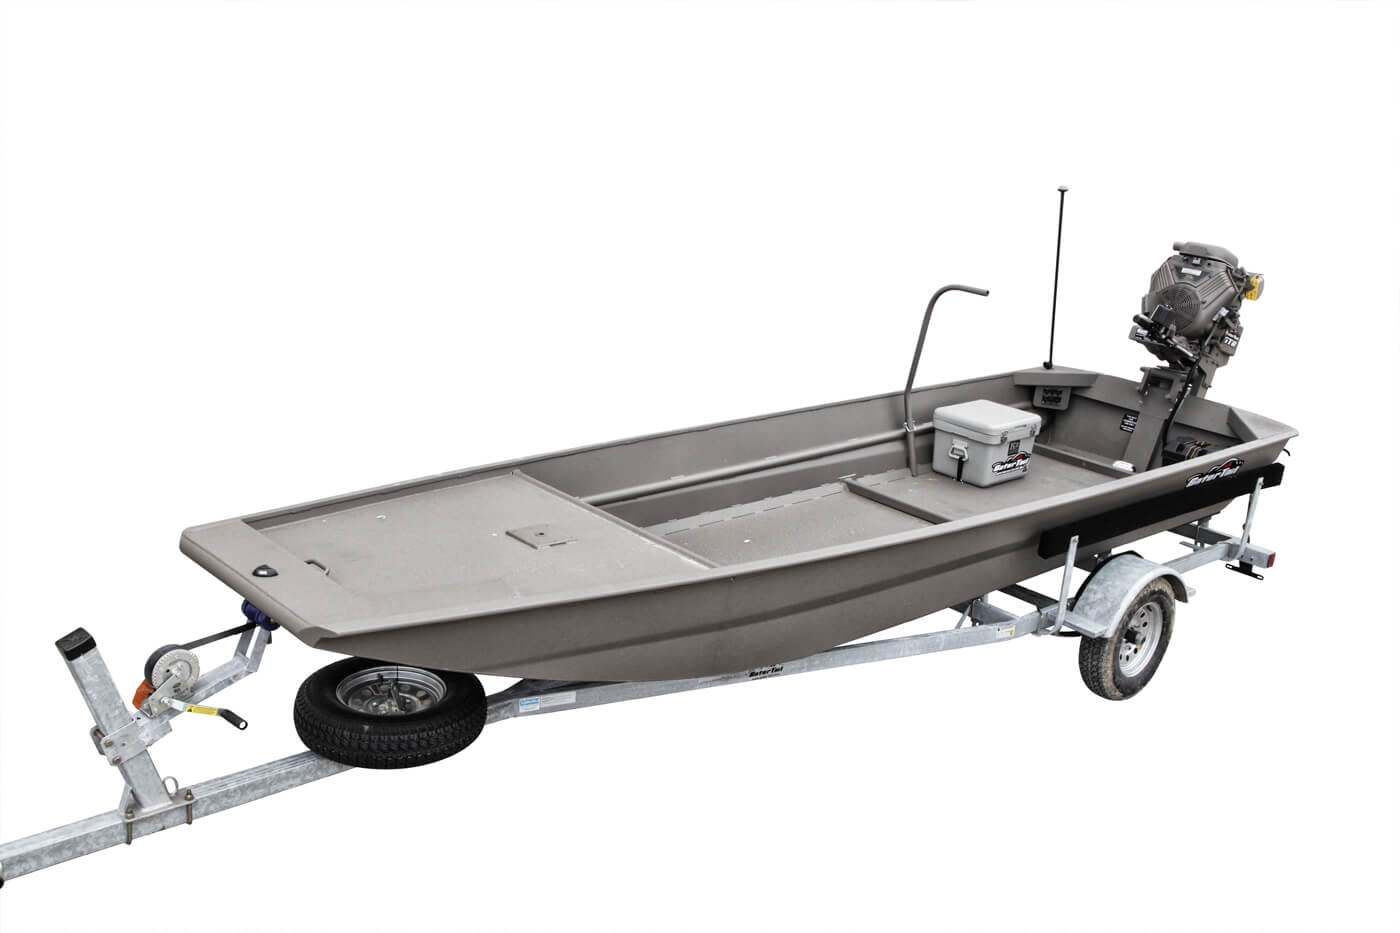 Gator-Tail basic motor/boat combination in trailer rig